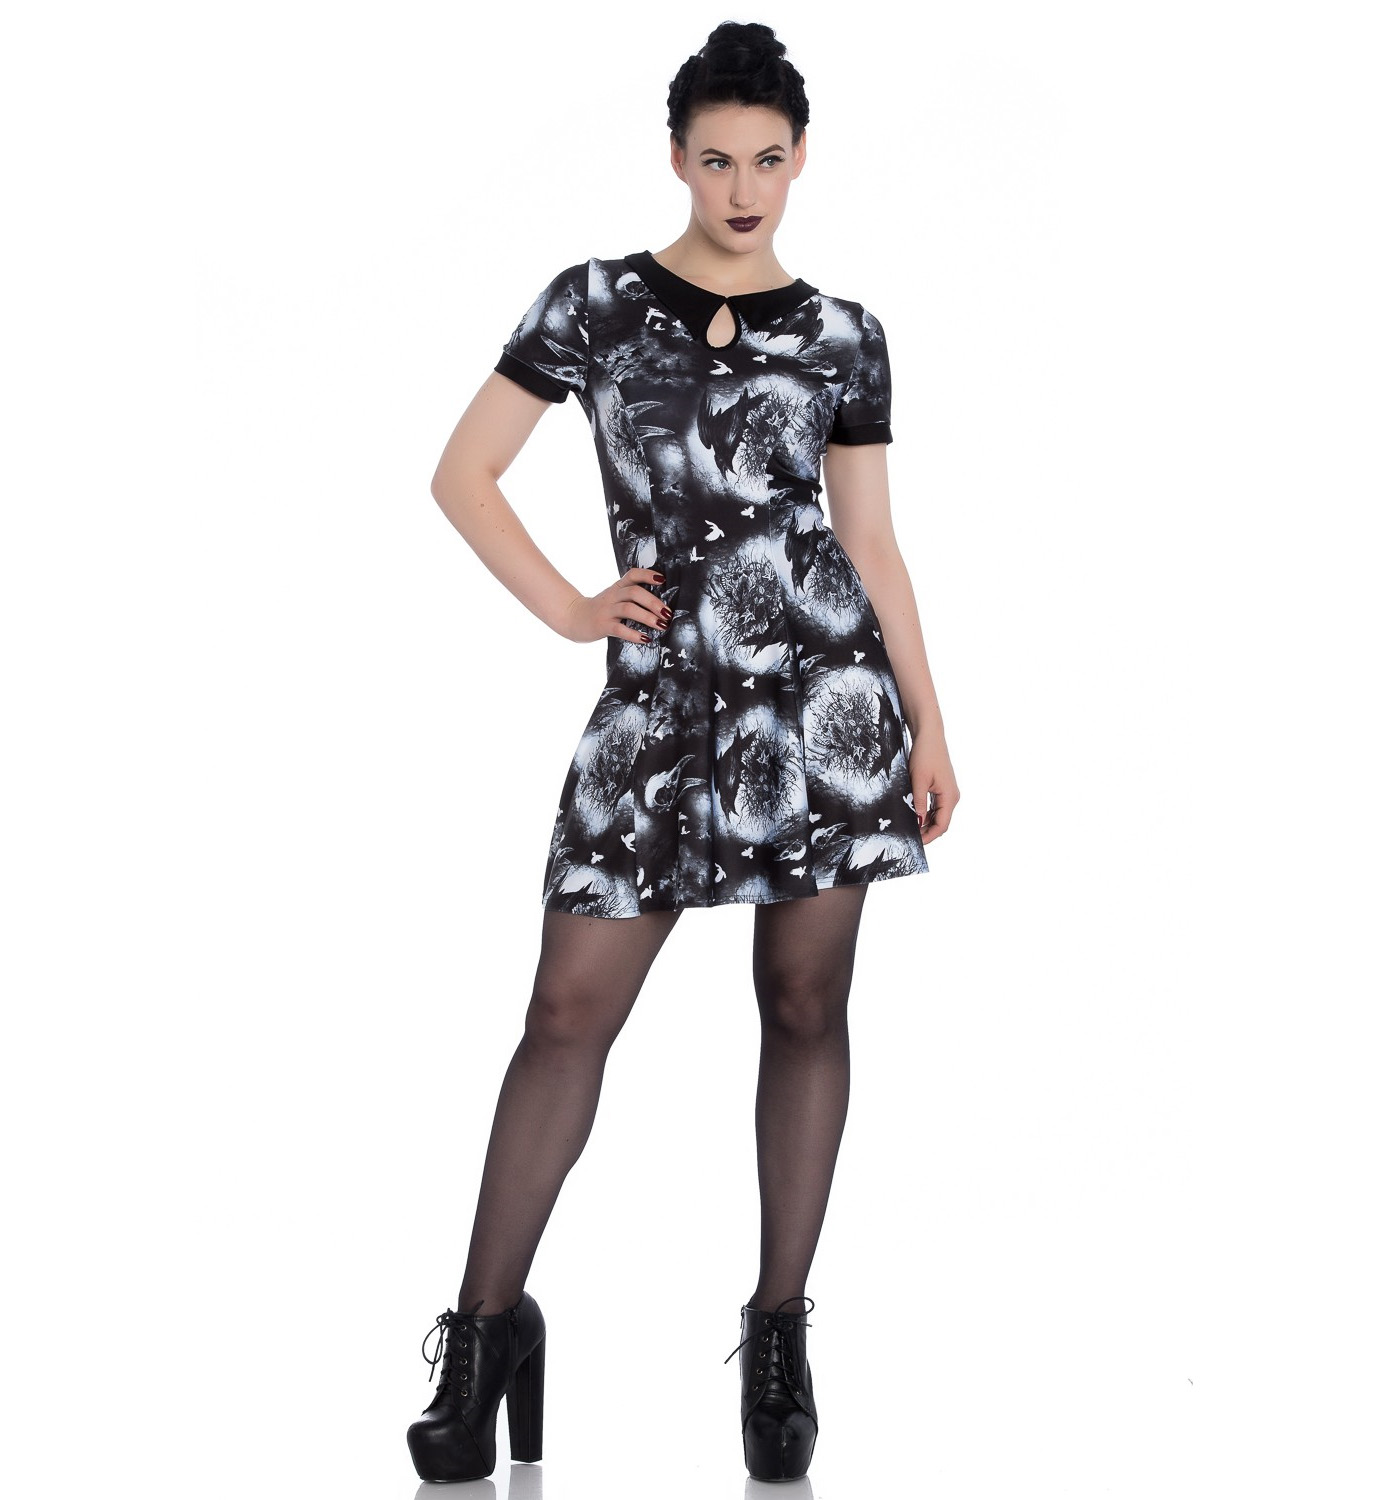 Hell-Bunny-Alternative-Goth-Punk-Black-Mini-Dress-CROWS-NEST-Witch-All-Sizes thumbnail 3